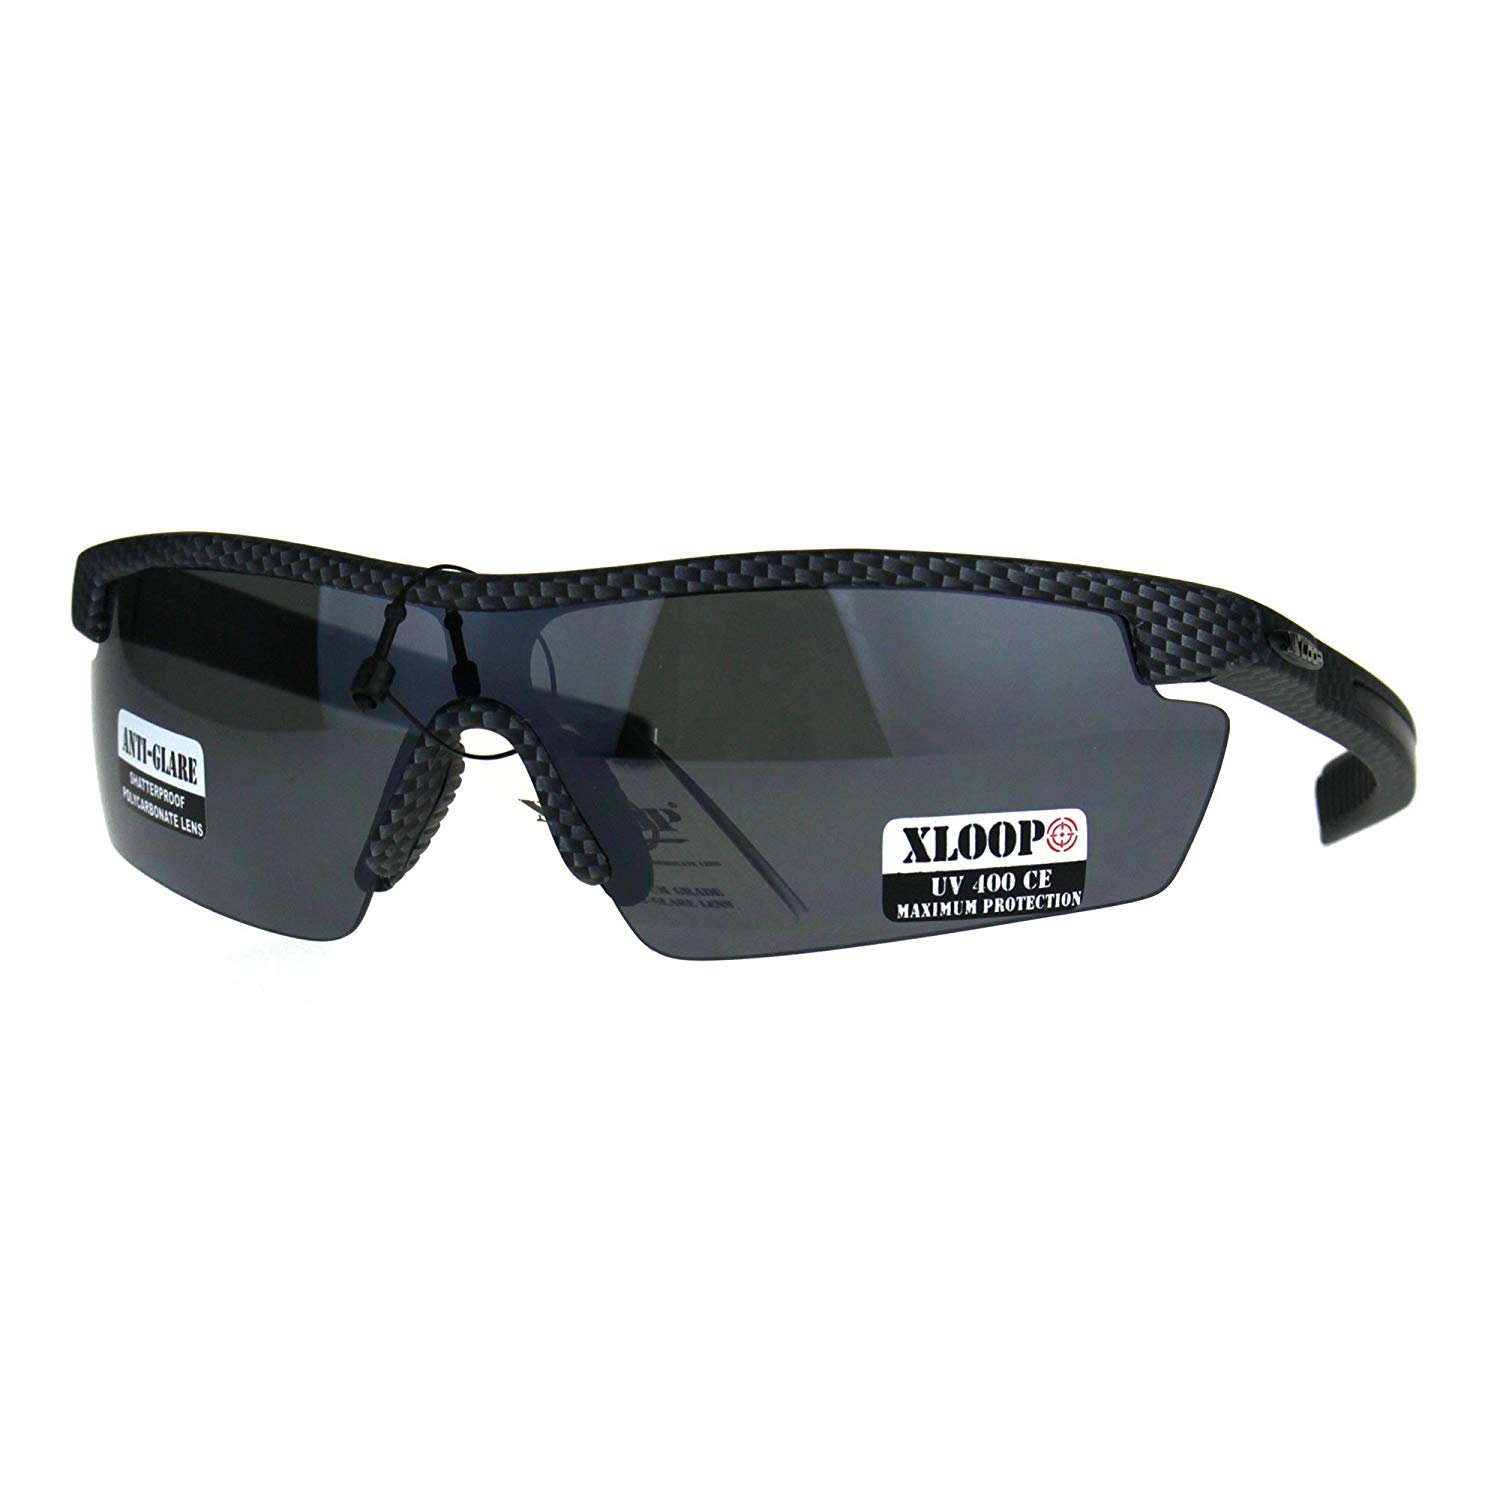 02afd44d07abb Get Quotations · Mens Xloop Half Rim Baseball Sport Shield Plastic  Sunglasses